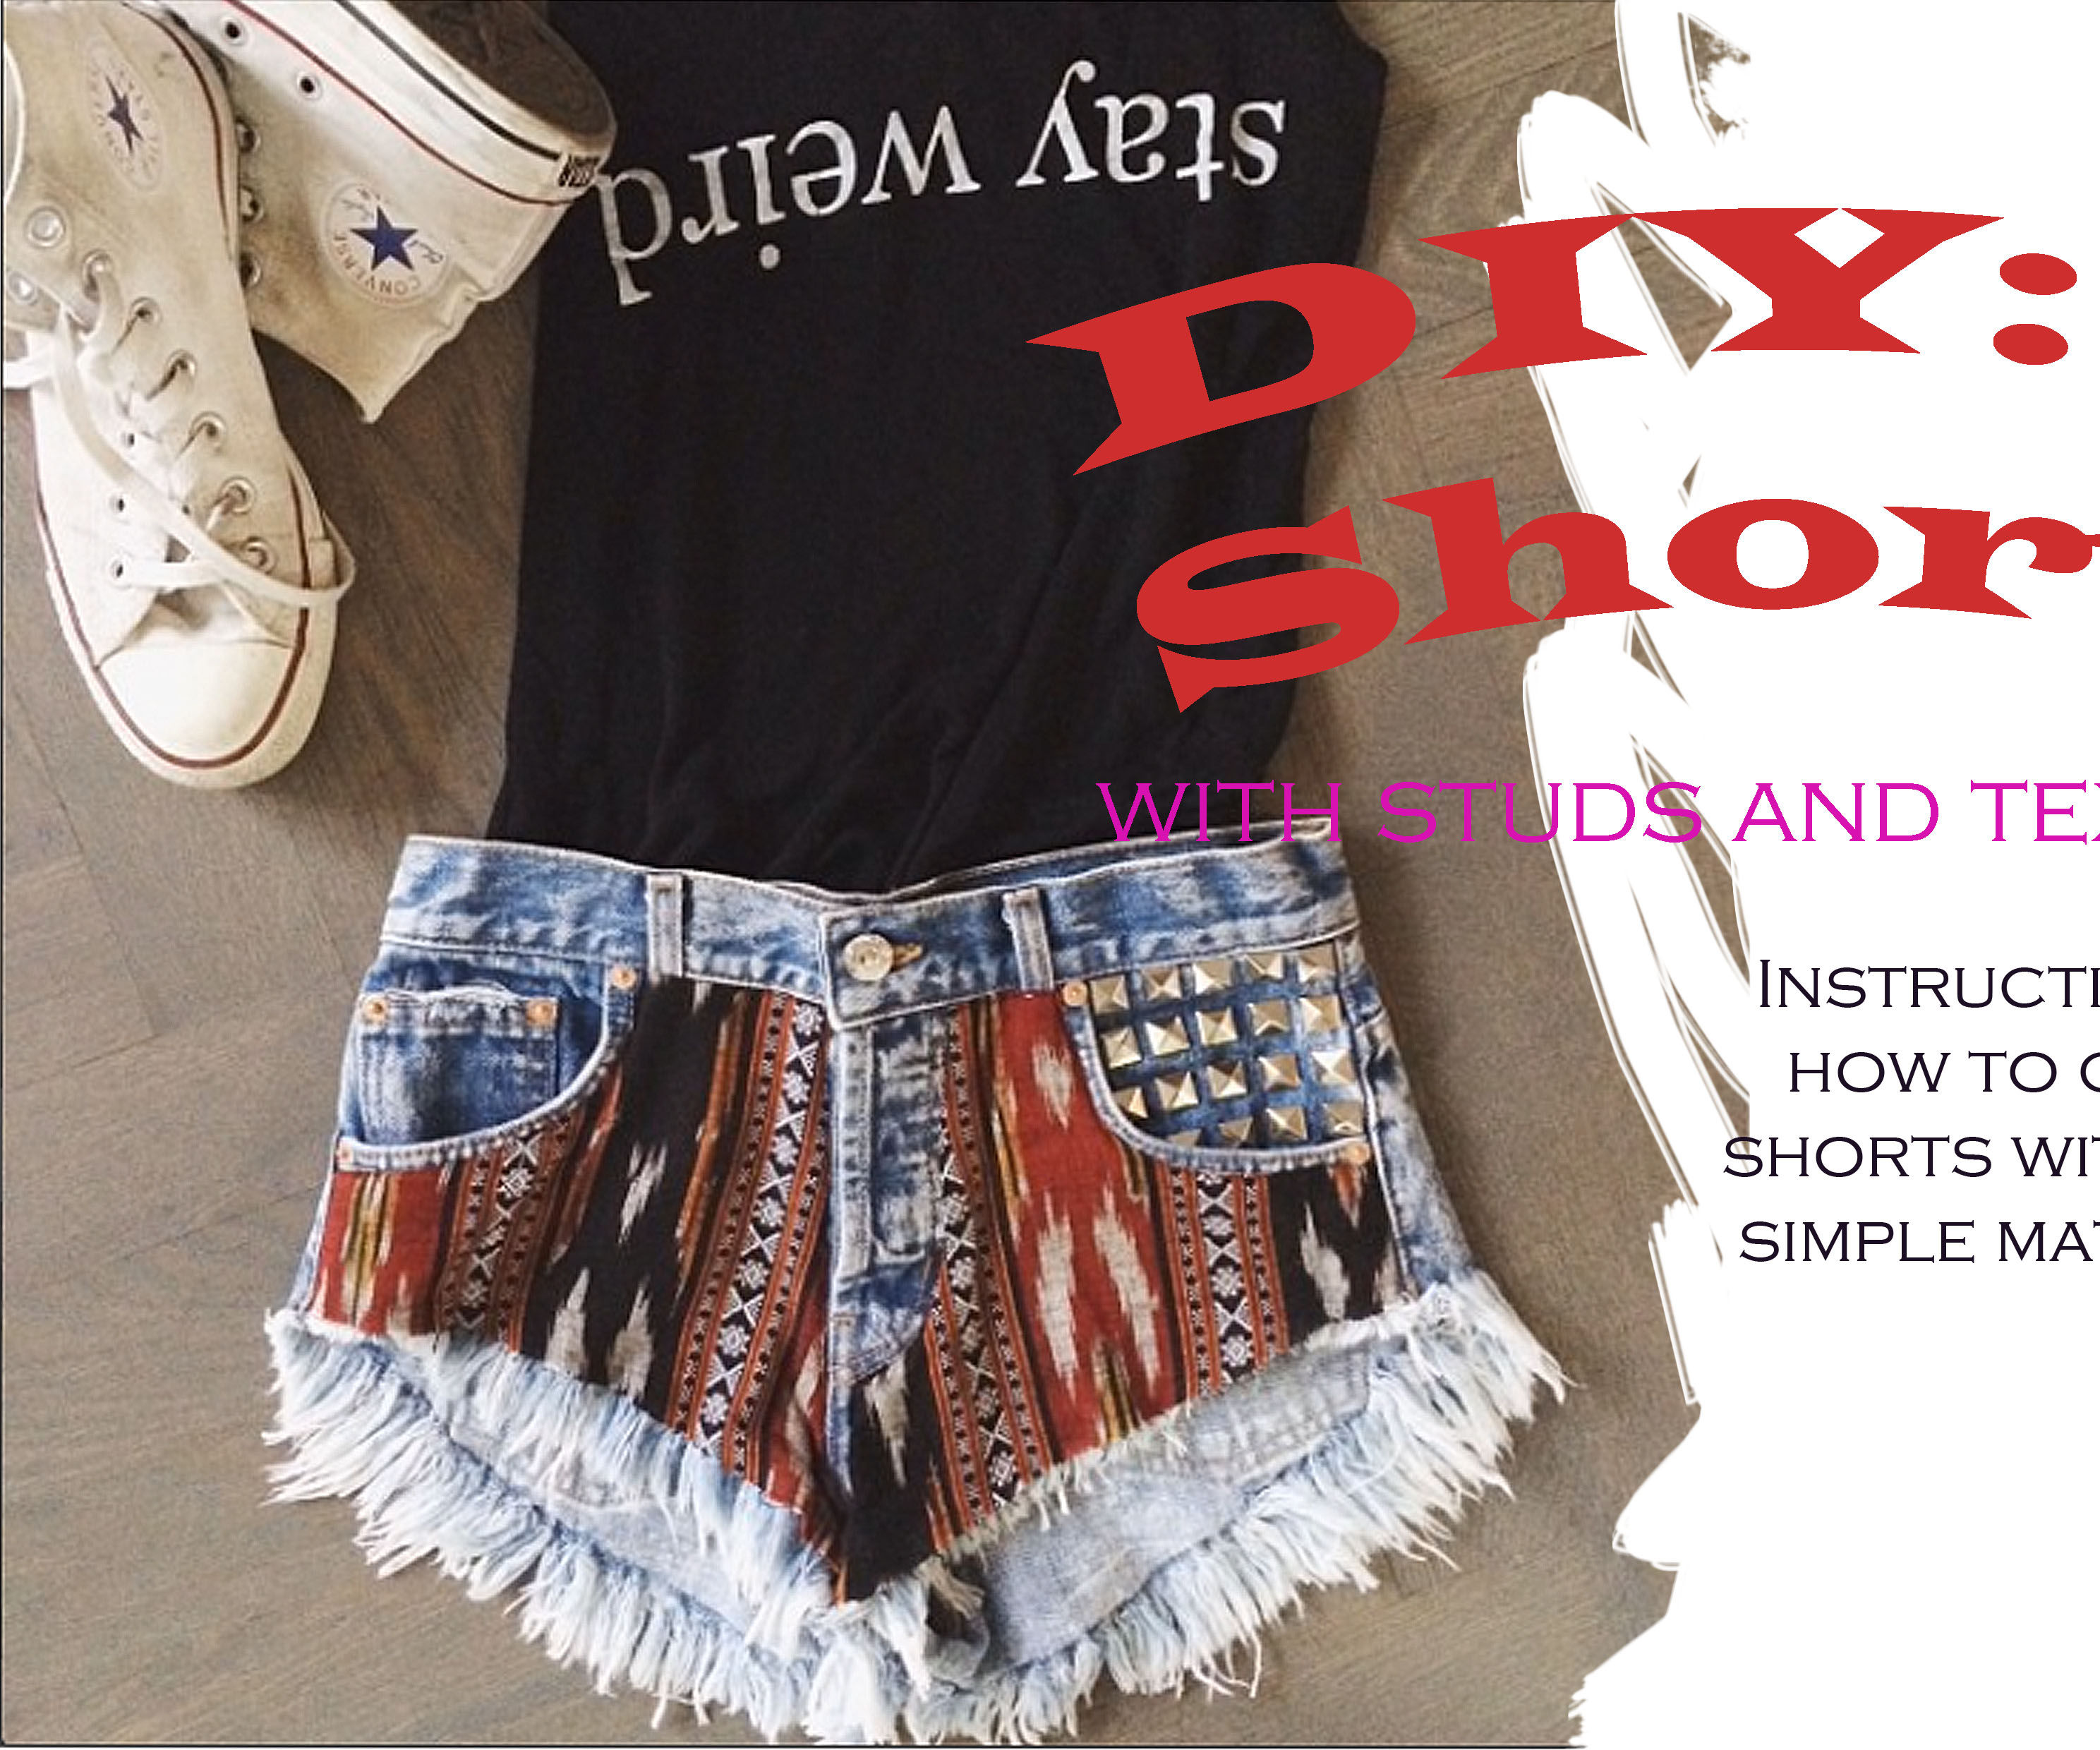 DIY Shorts with Studs and Textiles